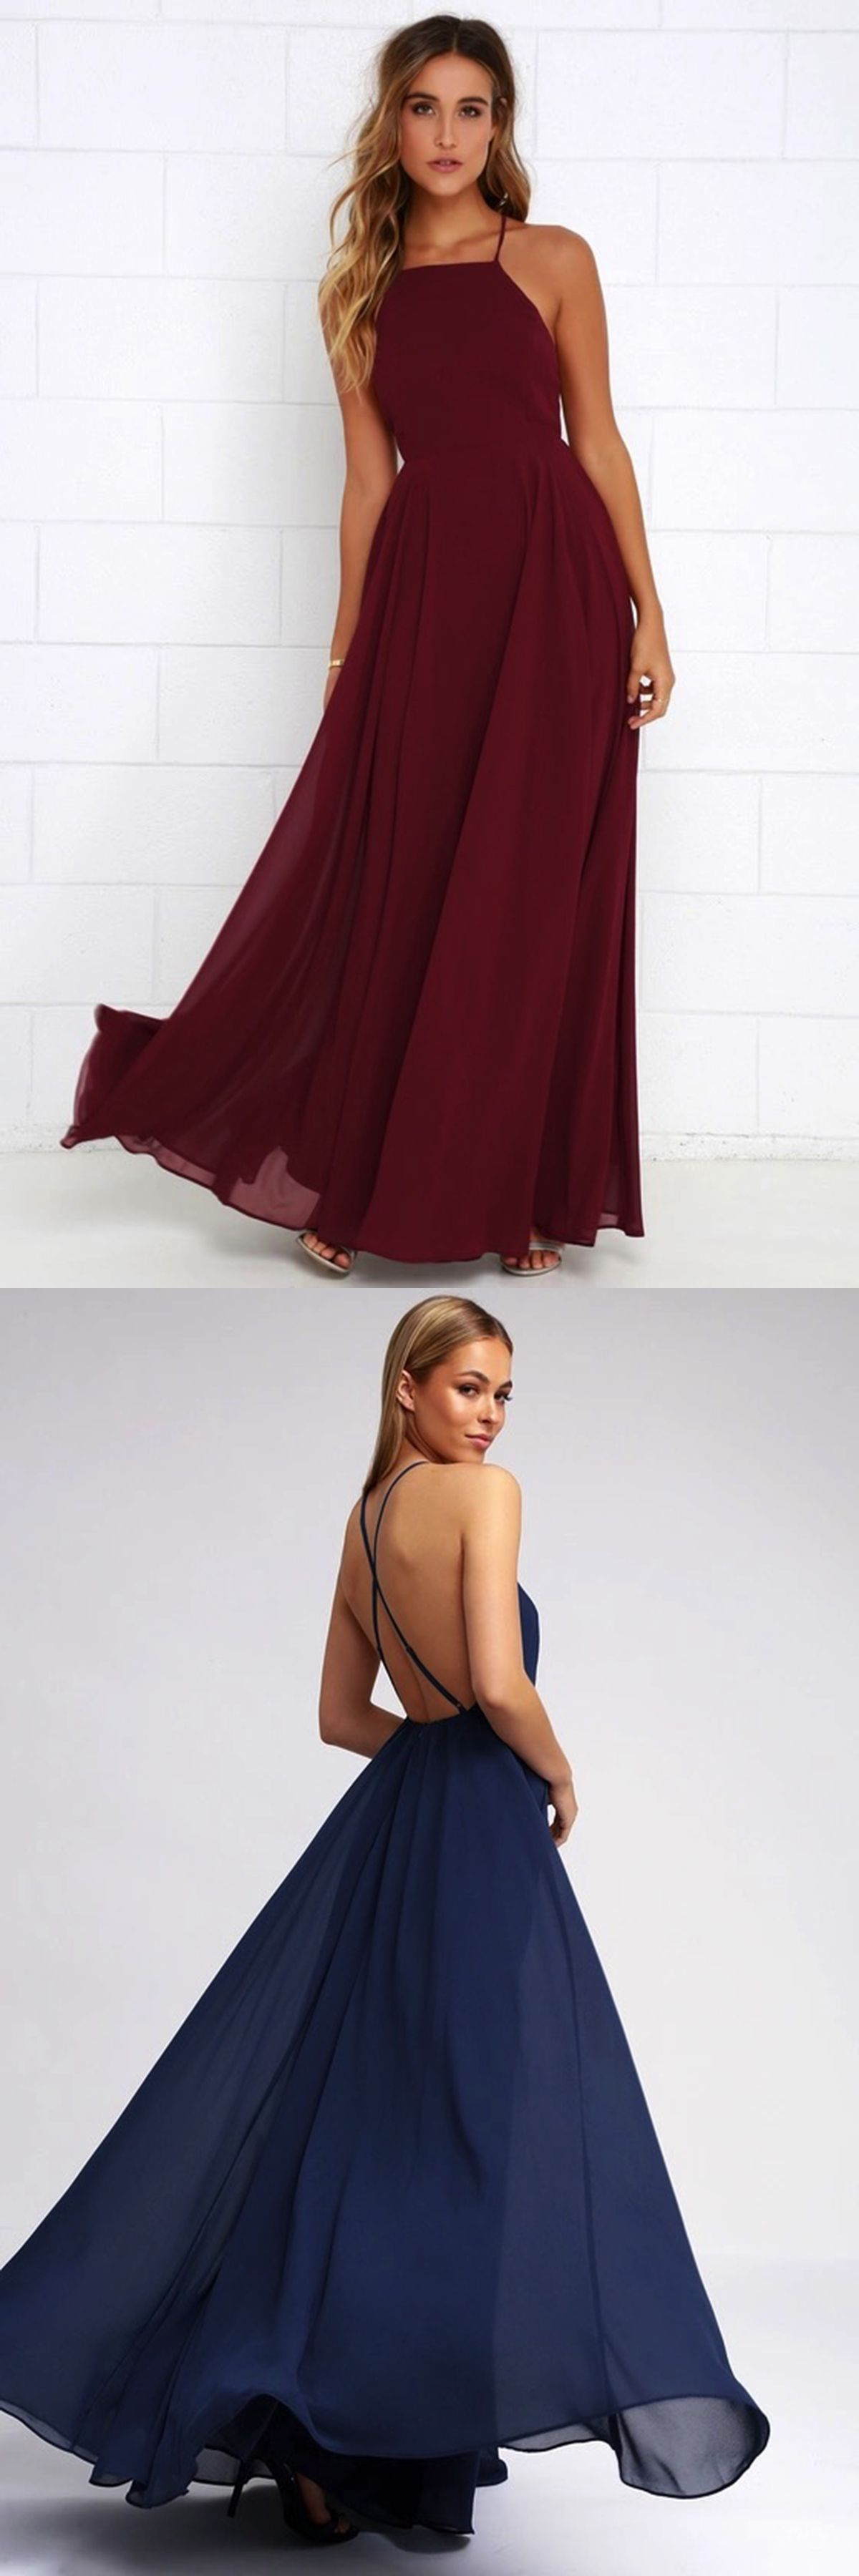 Simple burgundy chiffon strapless long open back prom dress evening